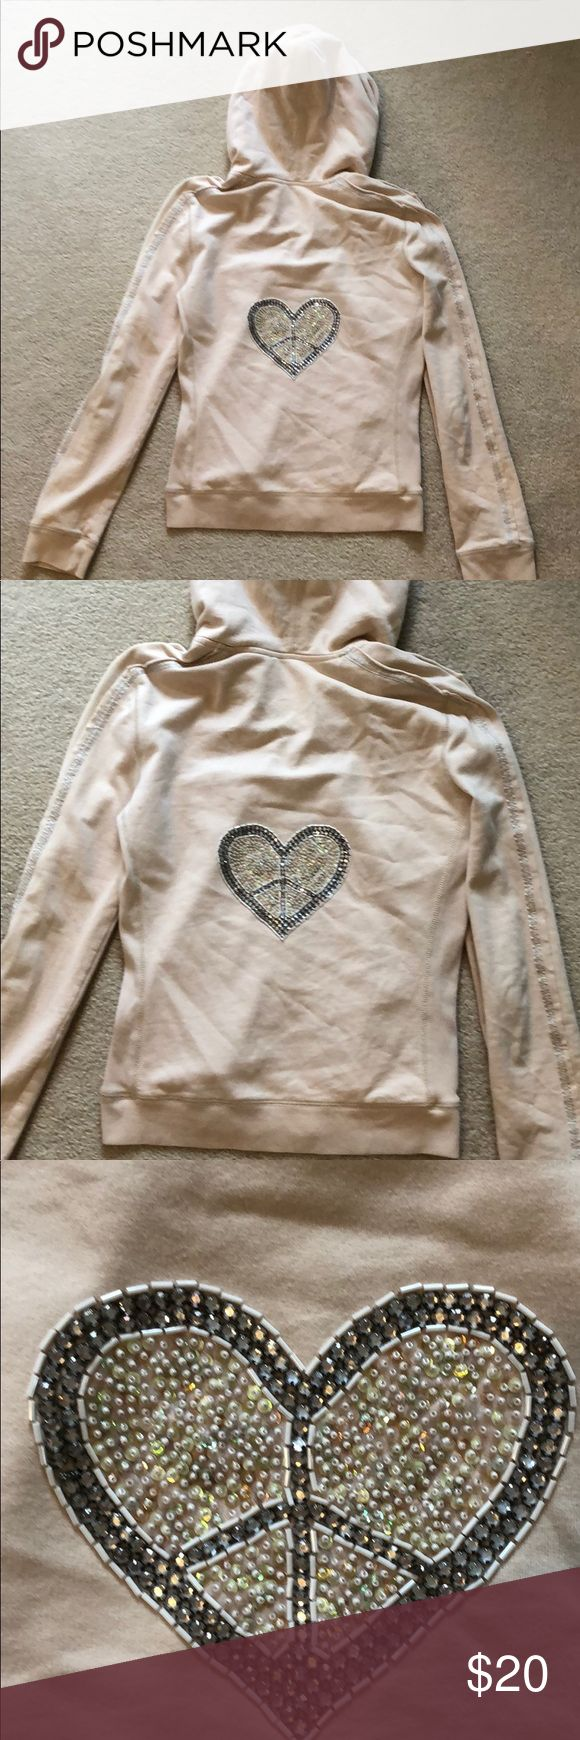 Twisted Heart embellished peace/heart hoodie L Size L tan/nude colored zip up Twisted Heart hoodie. Back size is embellished with peace sign heart. Small little pin hole notes in picture, otherwise in good condition! Tops Sweatshirts & Hoodies